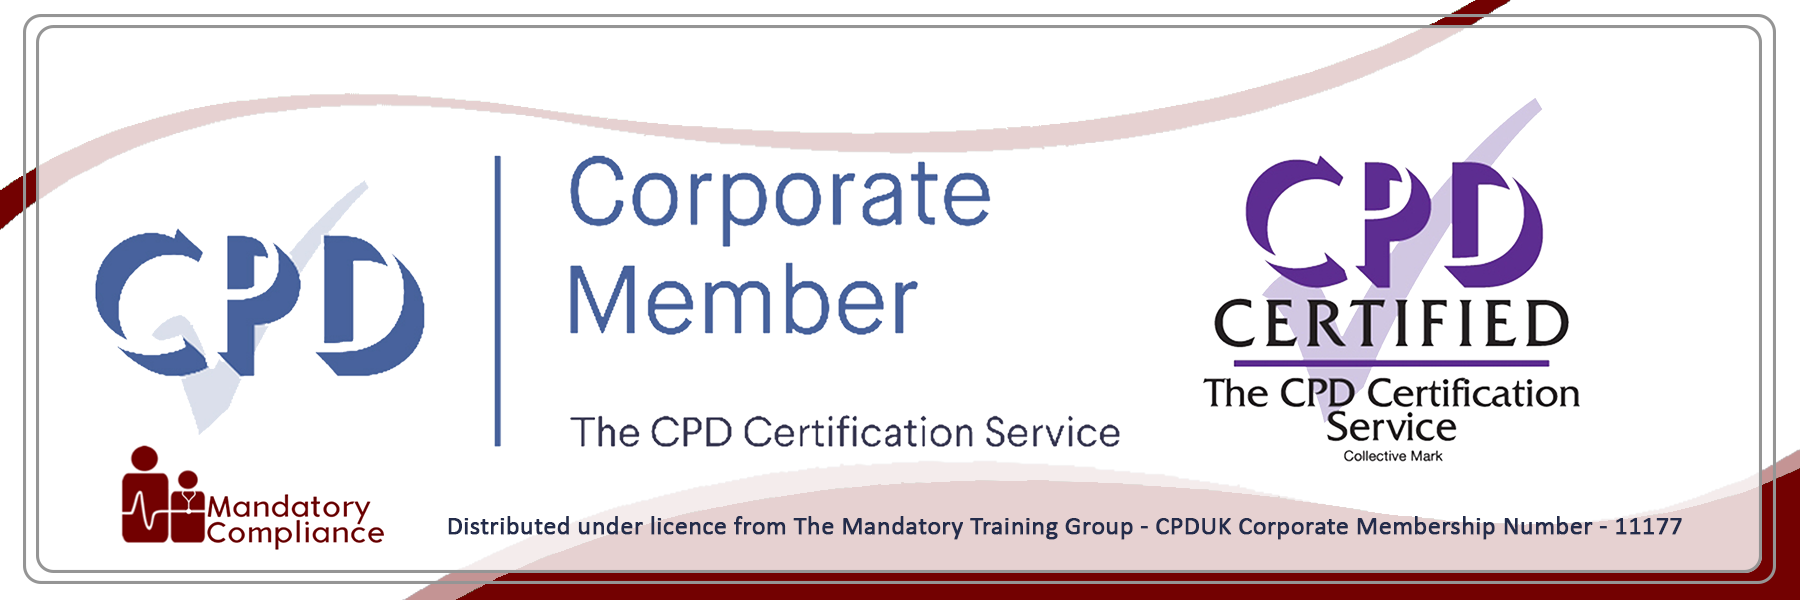 Child Protection - Online Course - The MAndatory Compliance UK -